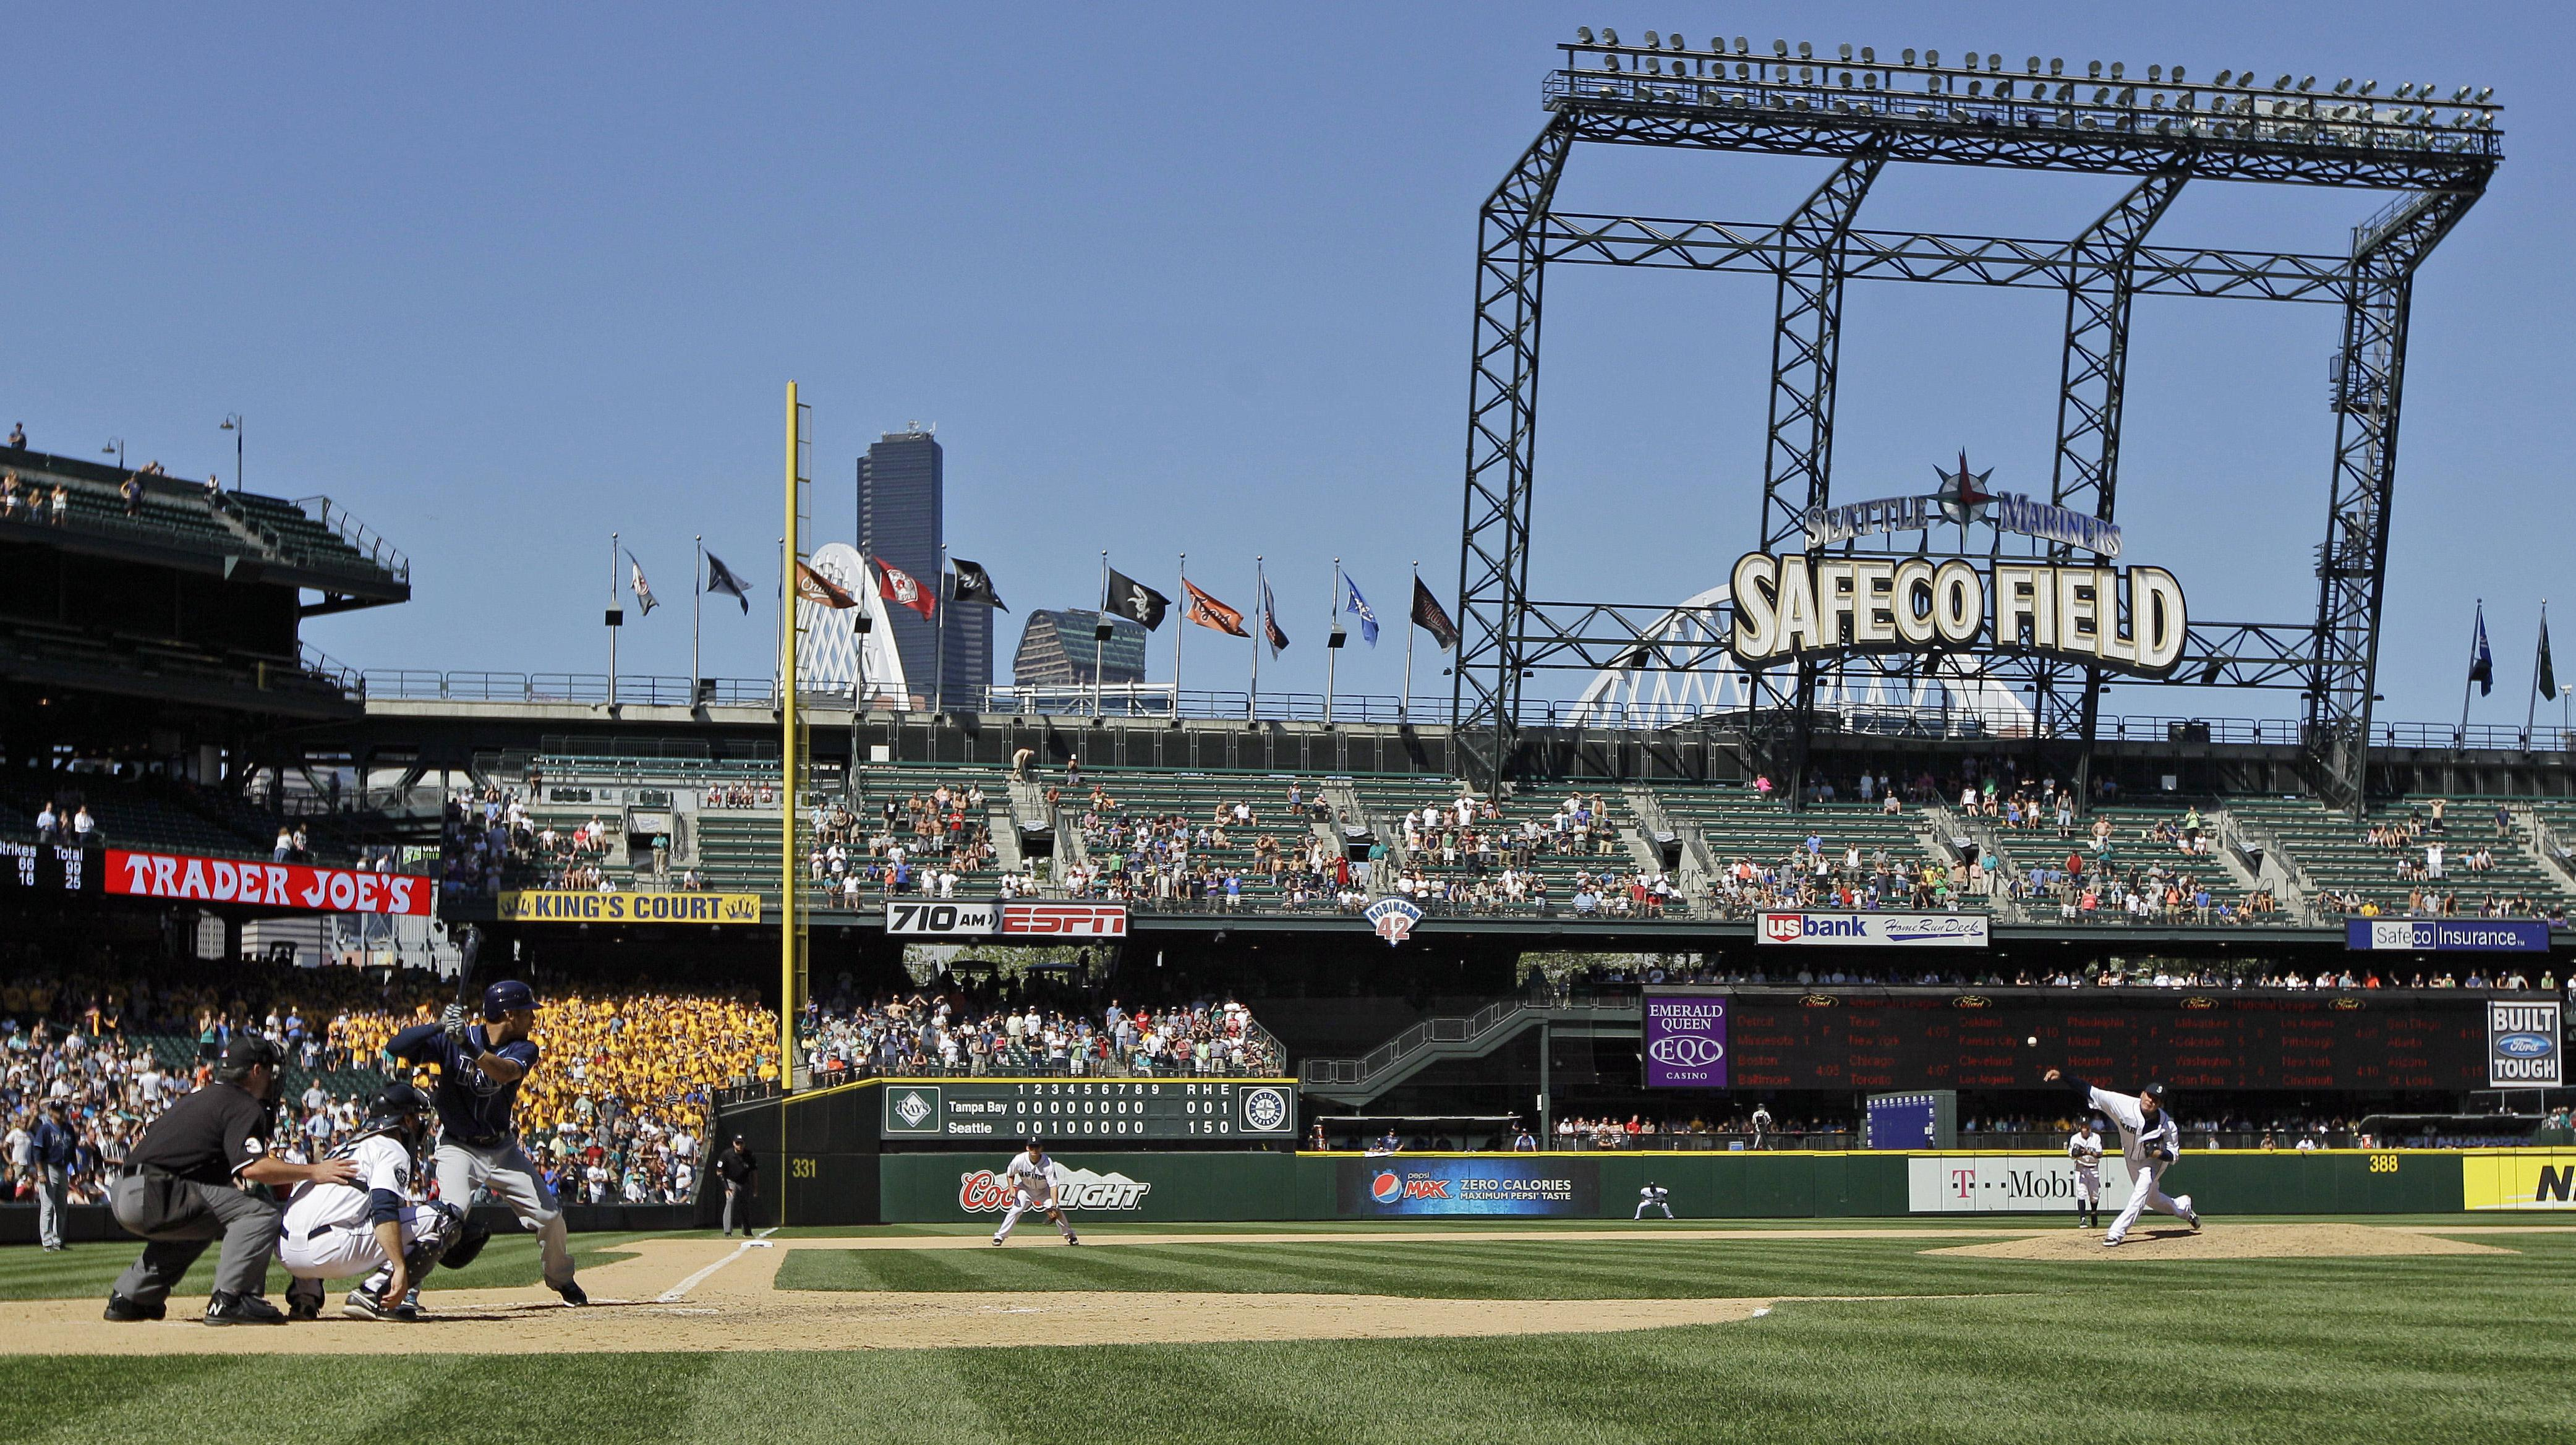 Mariners Safeco not extending naming rights deal